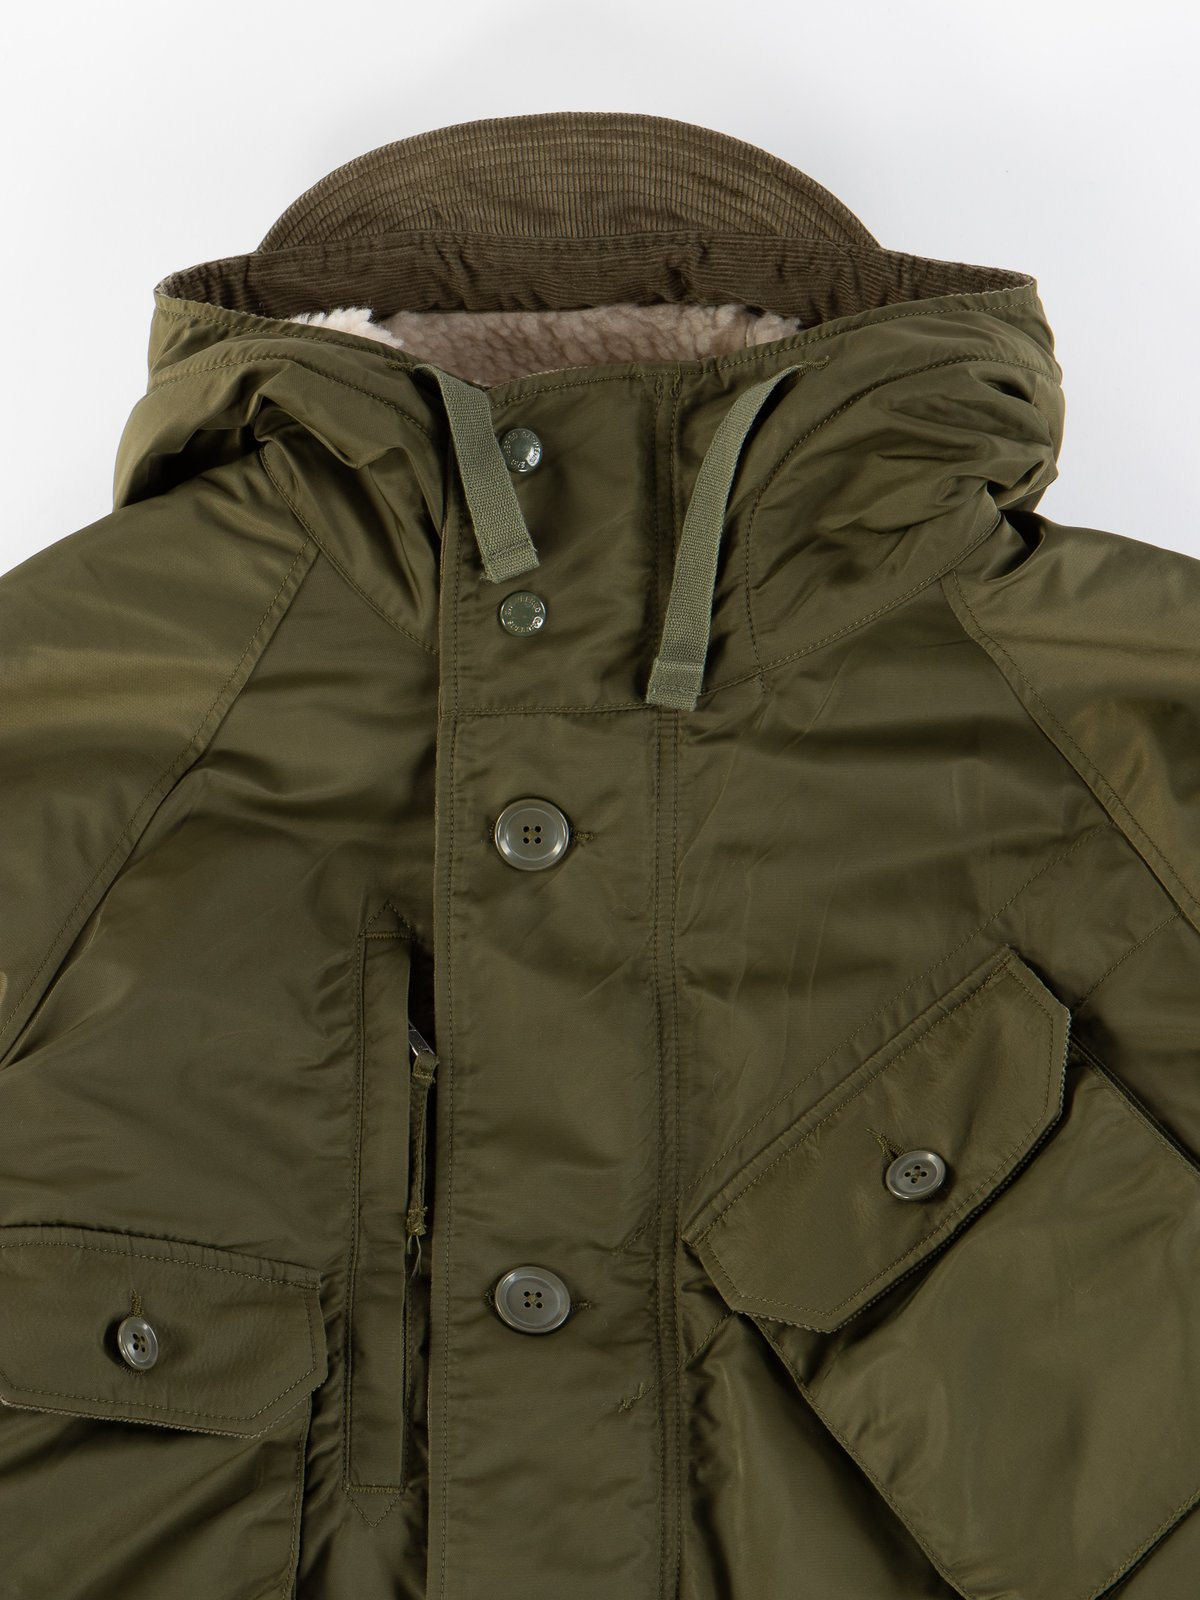 Olive Flight Satin Nylon Field Parka - Image 4